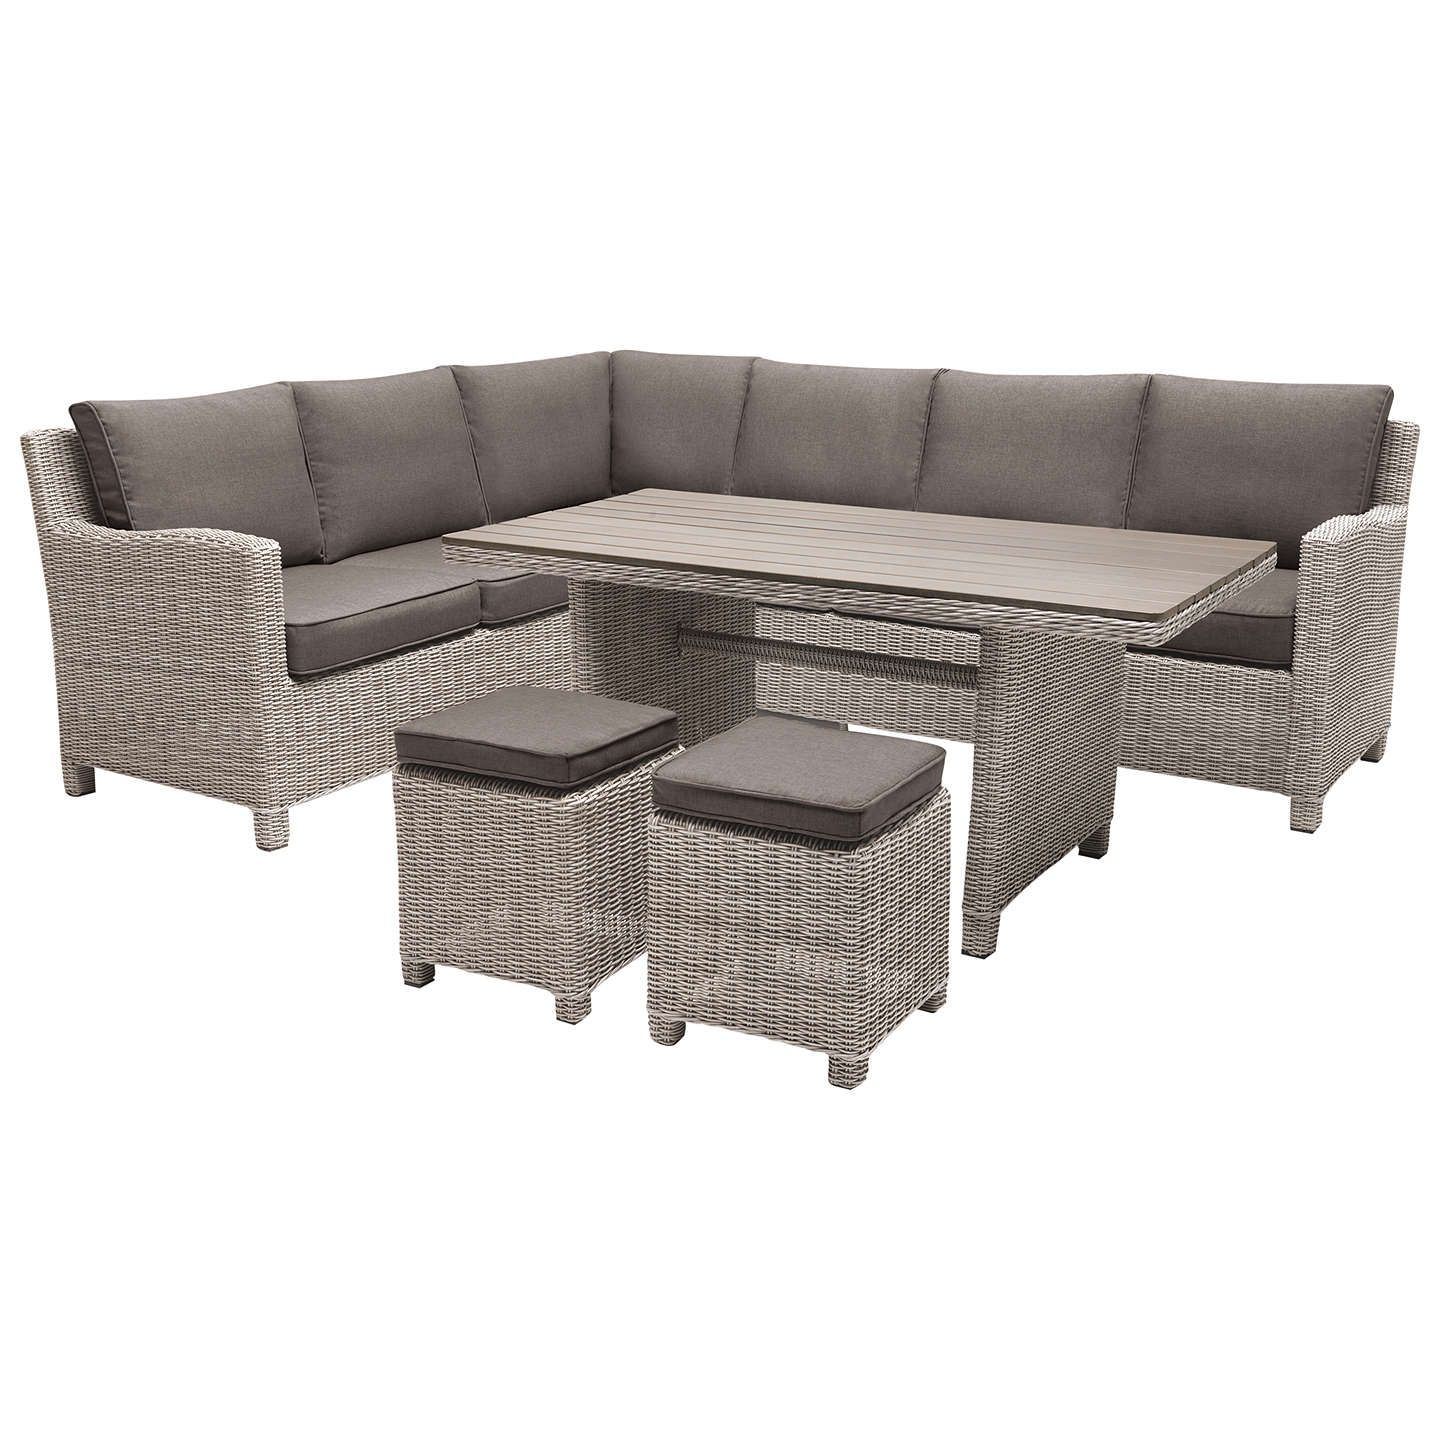 Kettler Paros 8 Seater Garden Dining Table And Chairs Set Grey: KETTLER Palma 8 Seater Garden Corner Lounging Table And